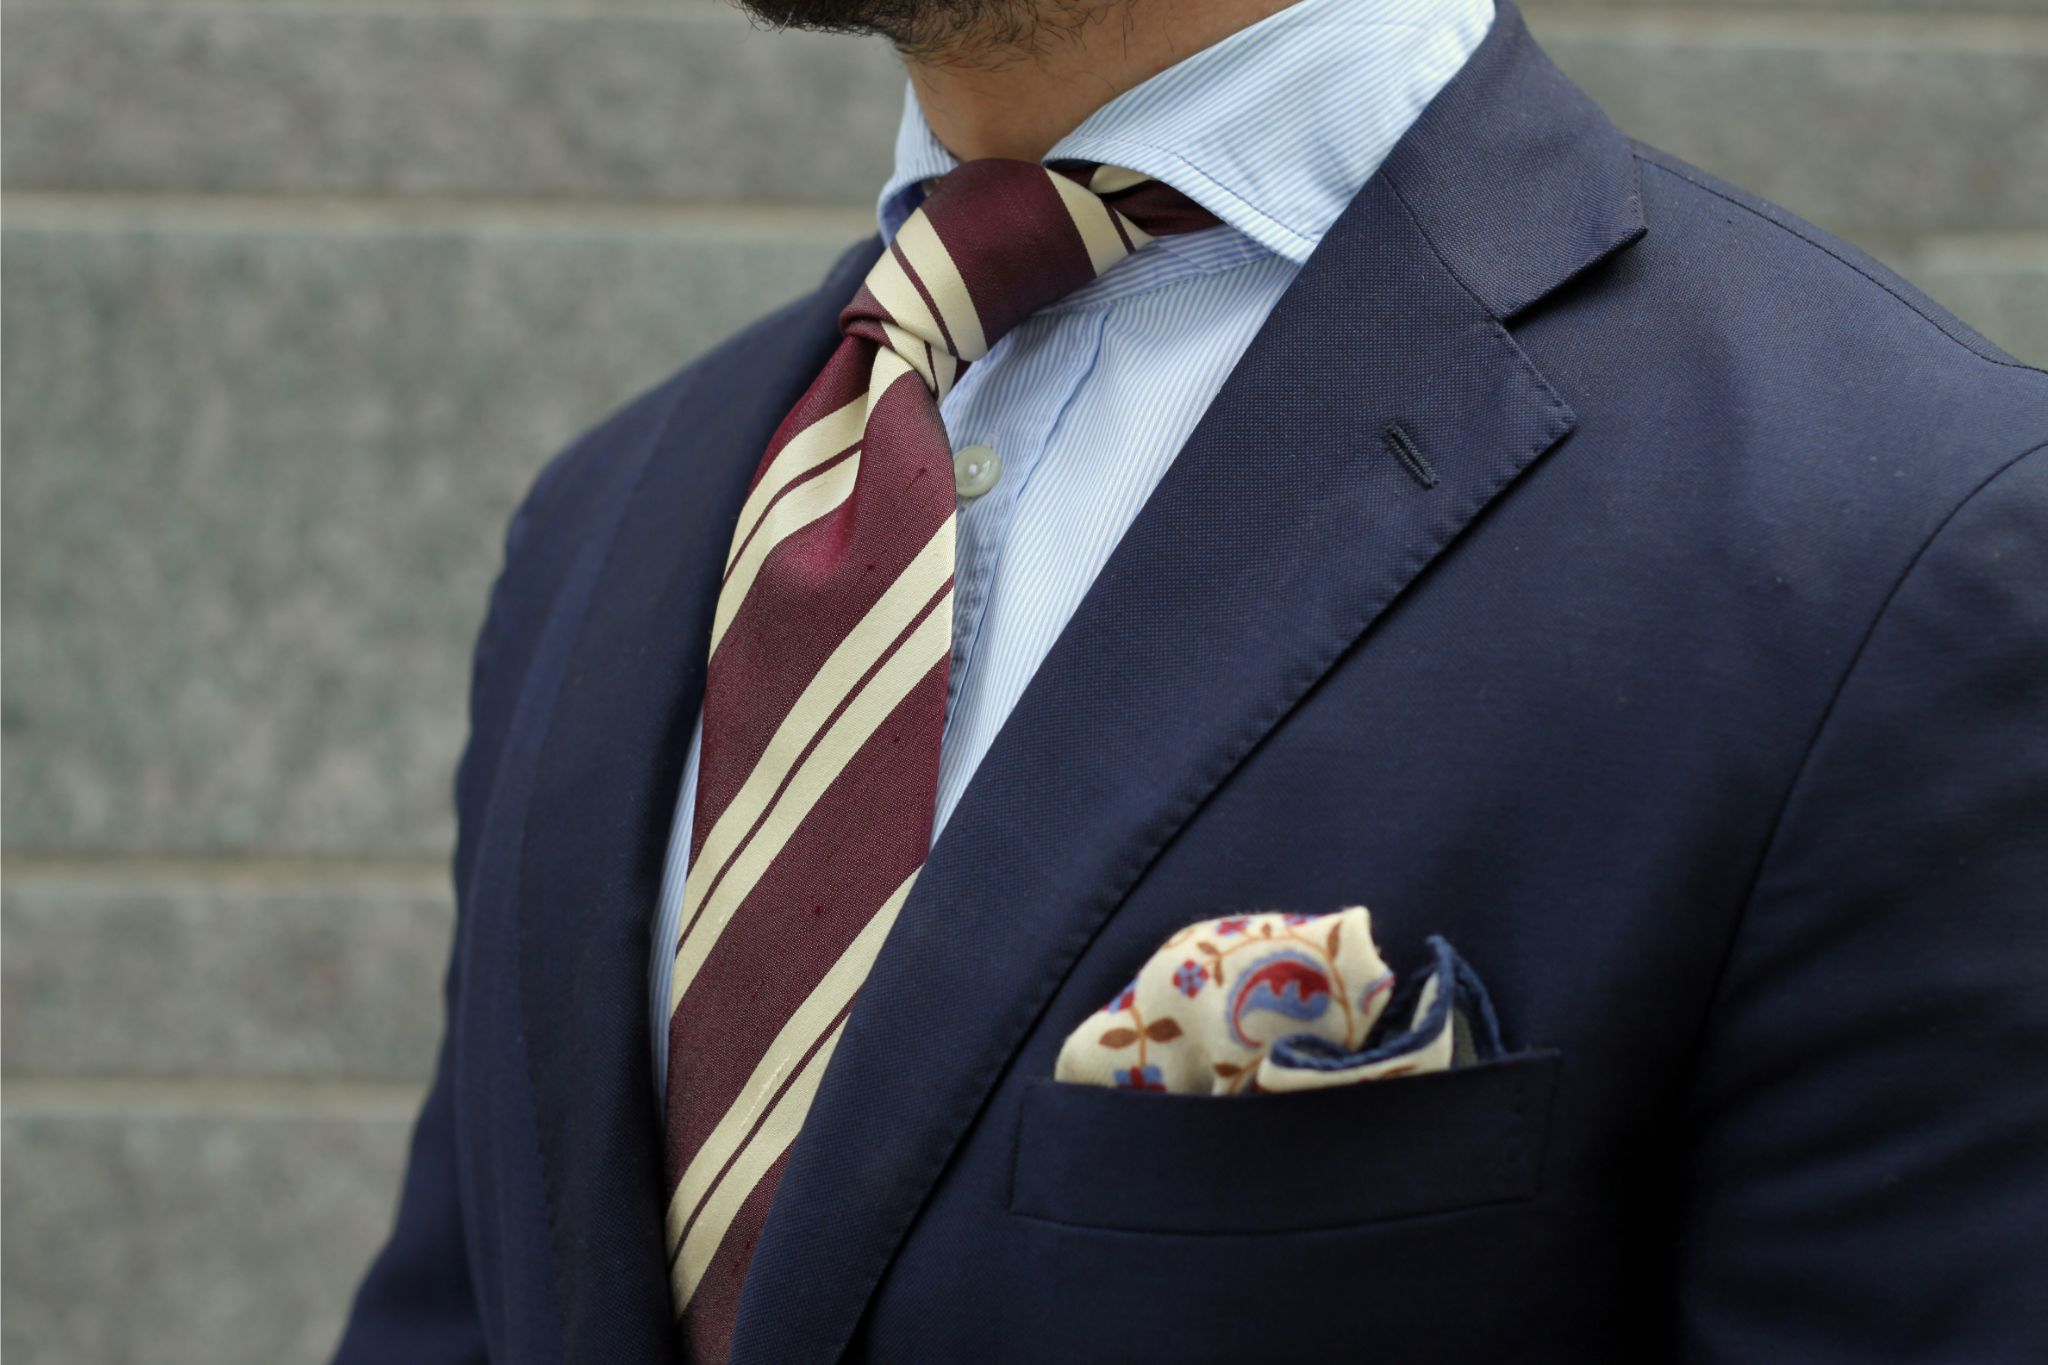 Burgundy accessories - striped shantung tie and double FiH-knot